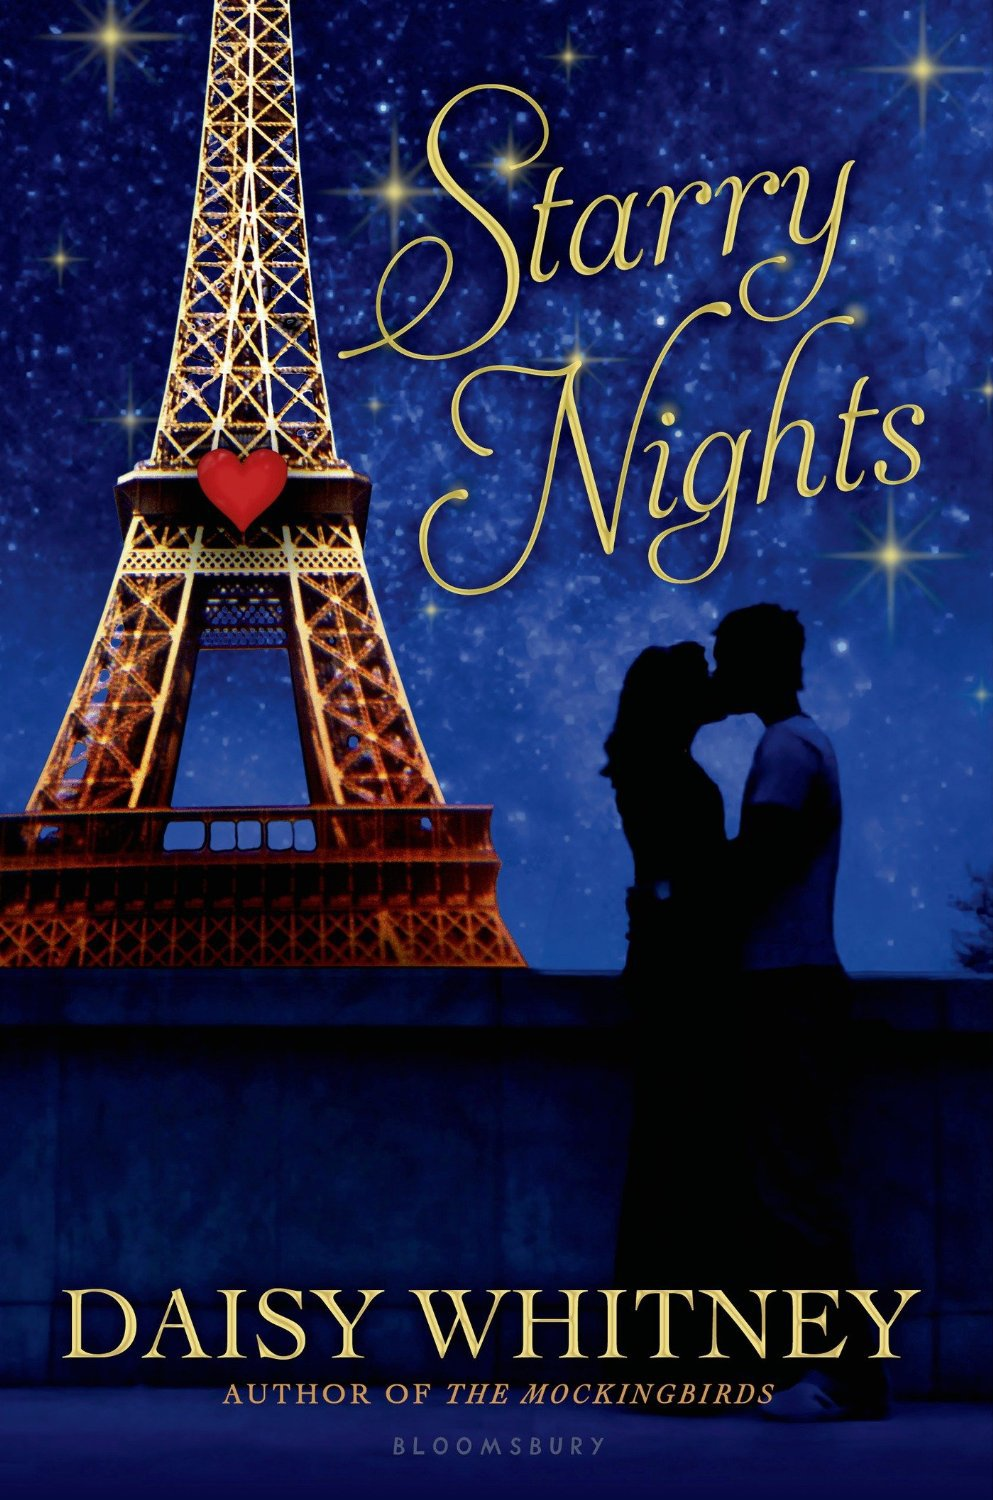 Starry Nights by Daisy Whitney Amazon | Goodreads